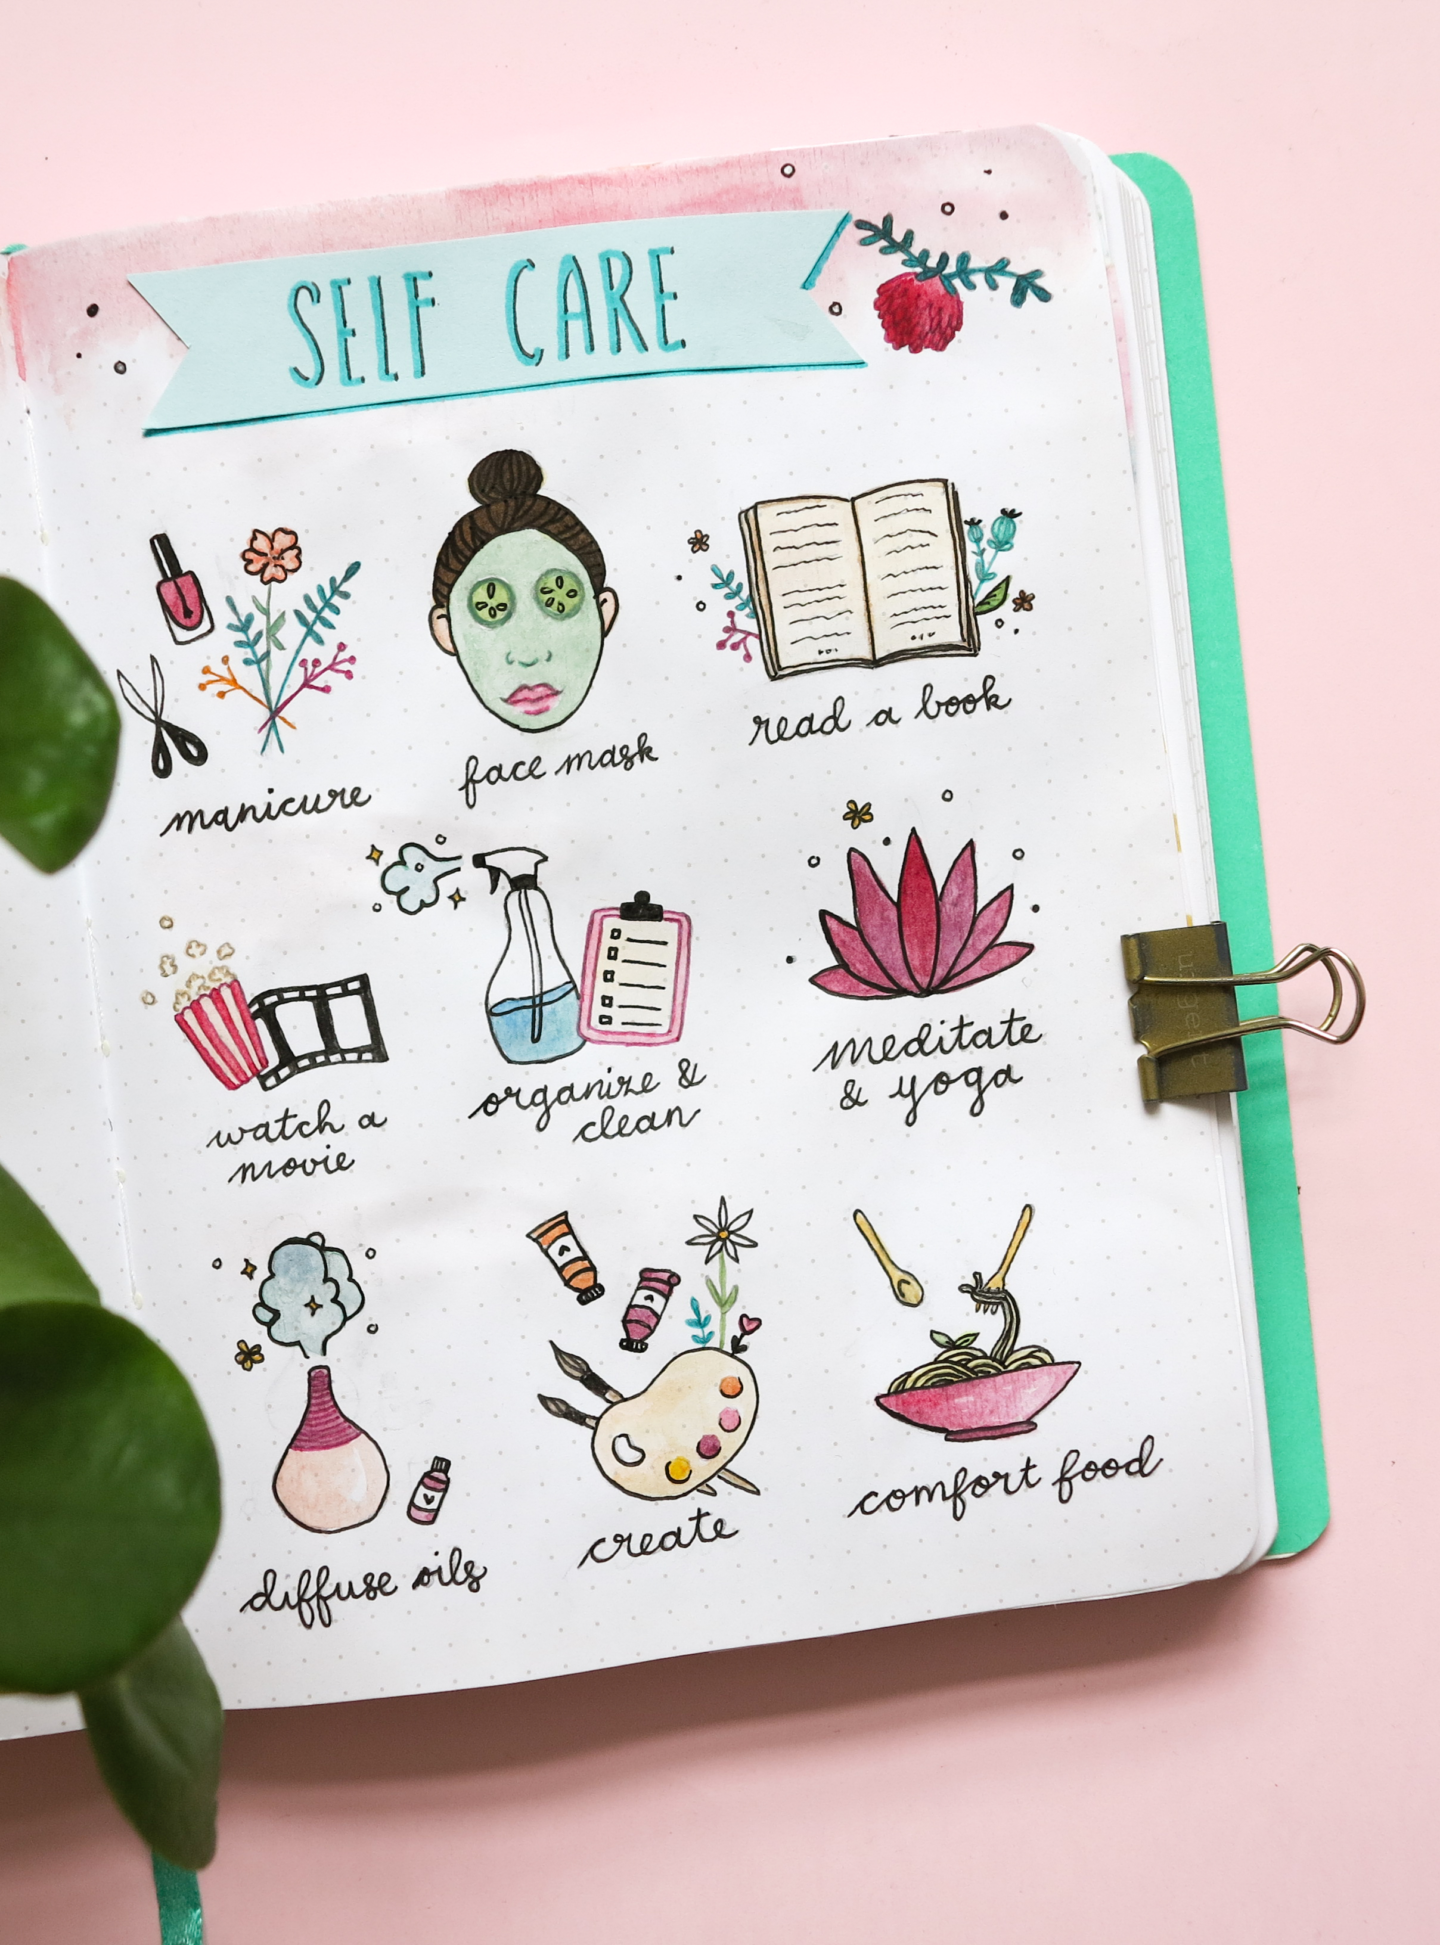 Bullet journal Plan With Me ★ February 2019 ★ Selfcare